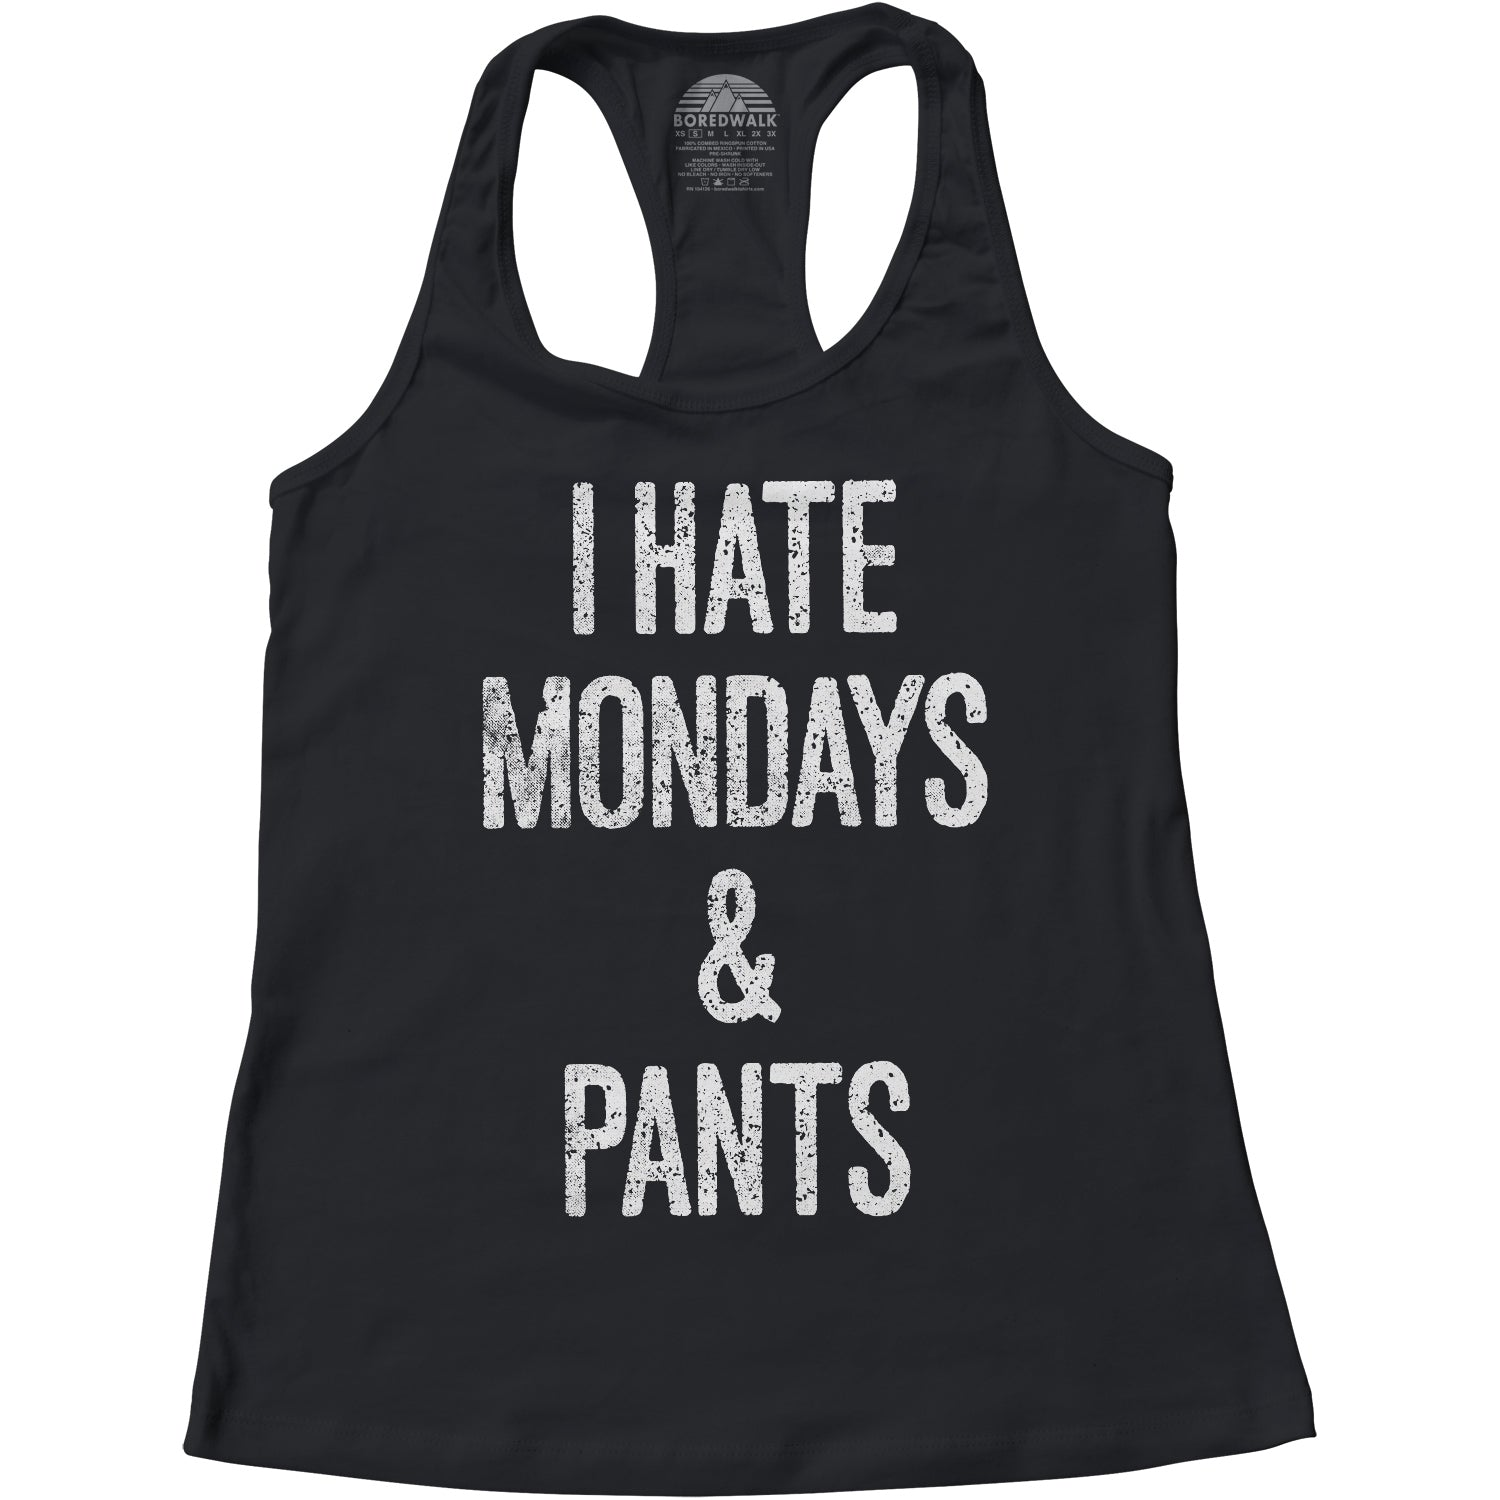 Women's I Hate Mondays and Pants Racerback Tank Top